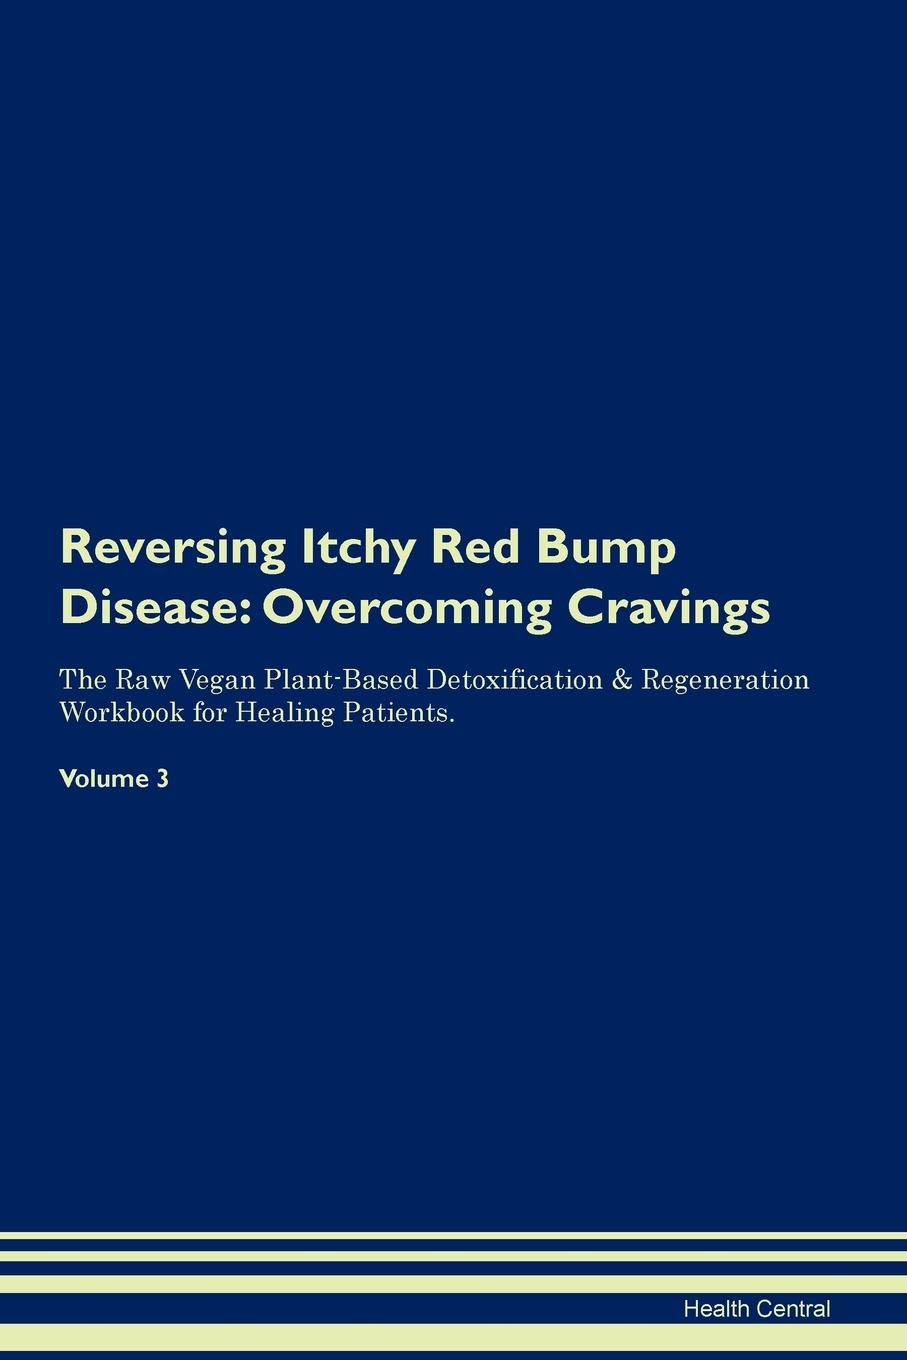 Фото - Health Central Reversing Itchy Red Bump Disease. Overcoming Cravings The Raw Vegan Plant-Based Detoxification & Regeneration Workbook for Healing Patients. Volume 3 health central reversing extramammary paget s disease overcoming cravings the raw vegan plant based detoxification regeneration workbook for healing patients volume 3